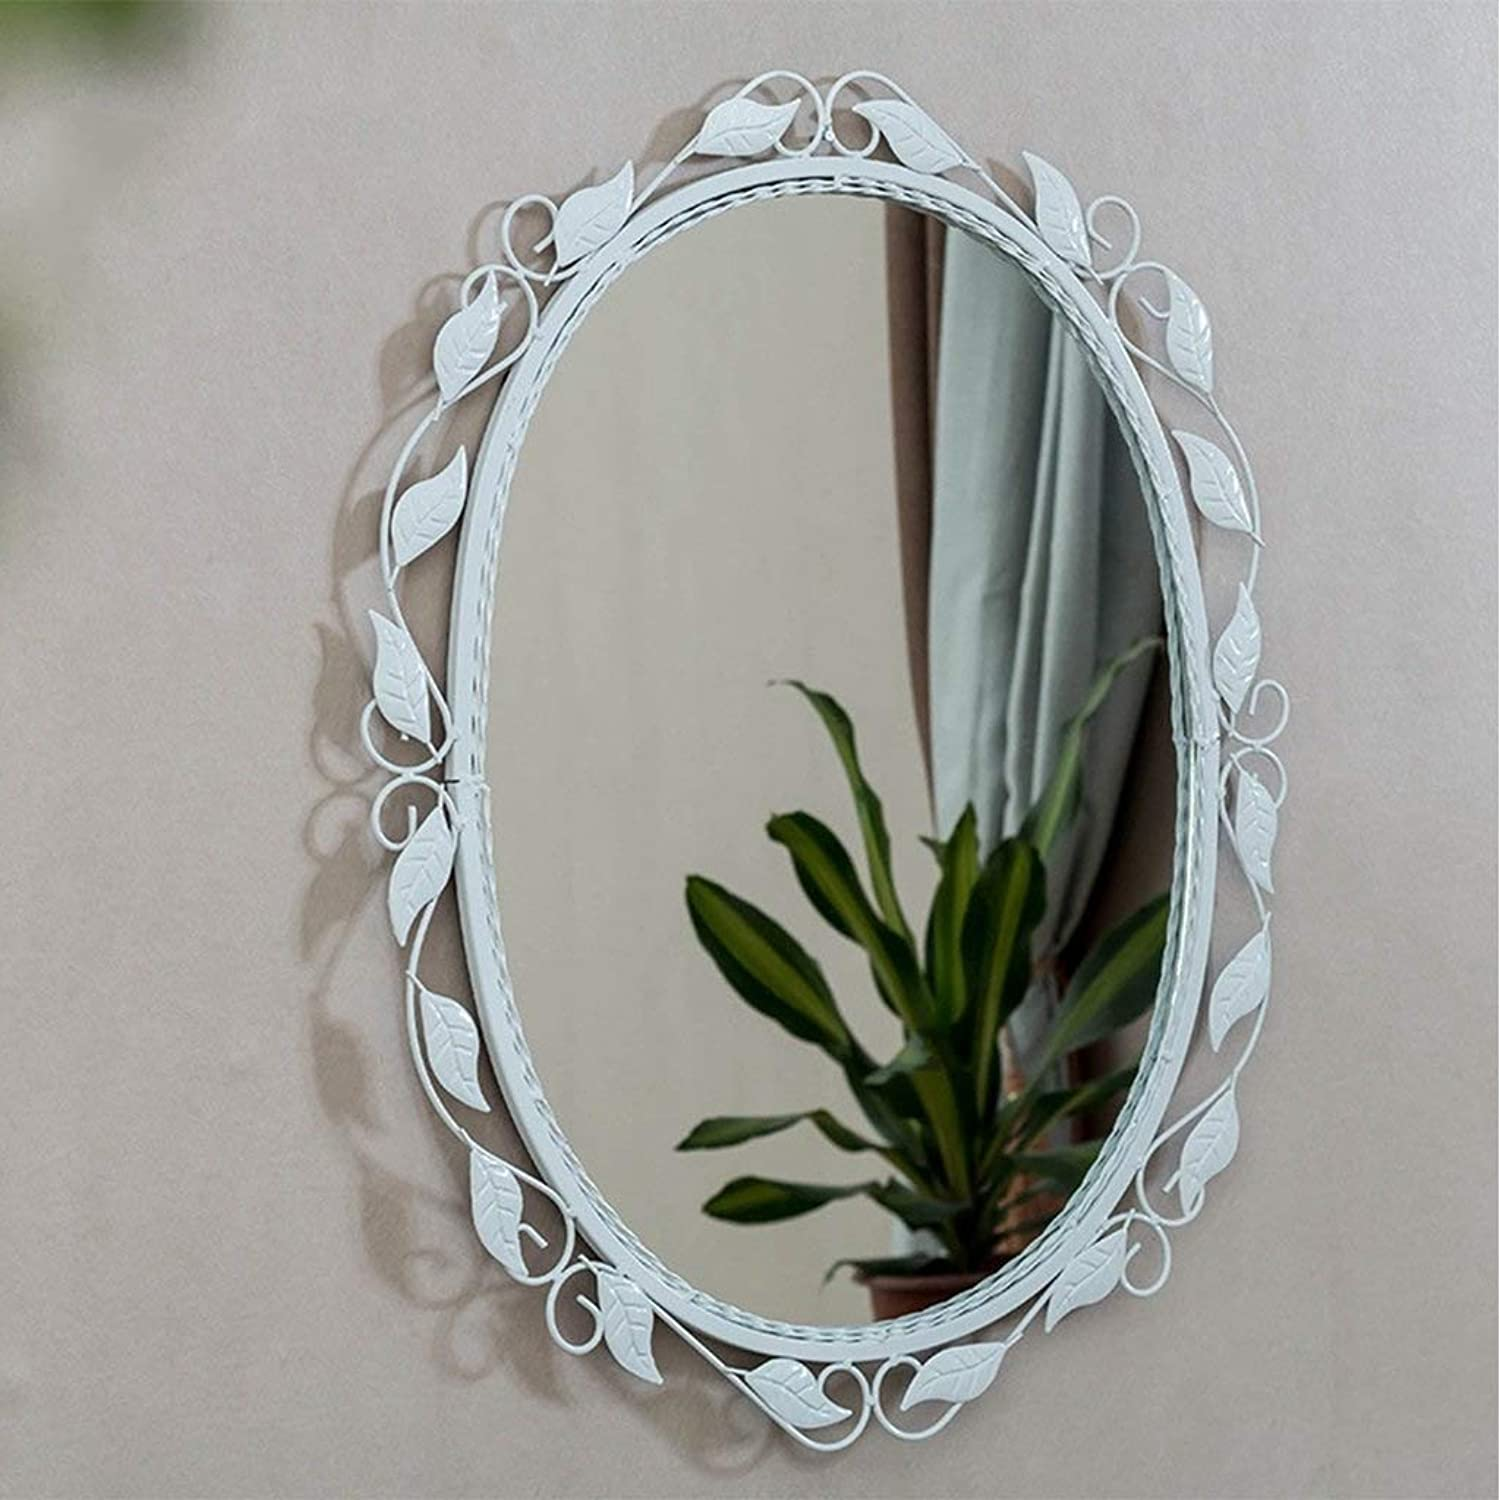 XIUXIU Mirror American Retro Old Wrought Iron Decorative Mirror Oval Simple Wall Hanging Vanity Mirror (color   White, Size   45cm60cm)